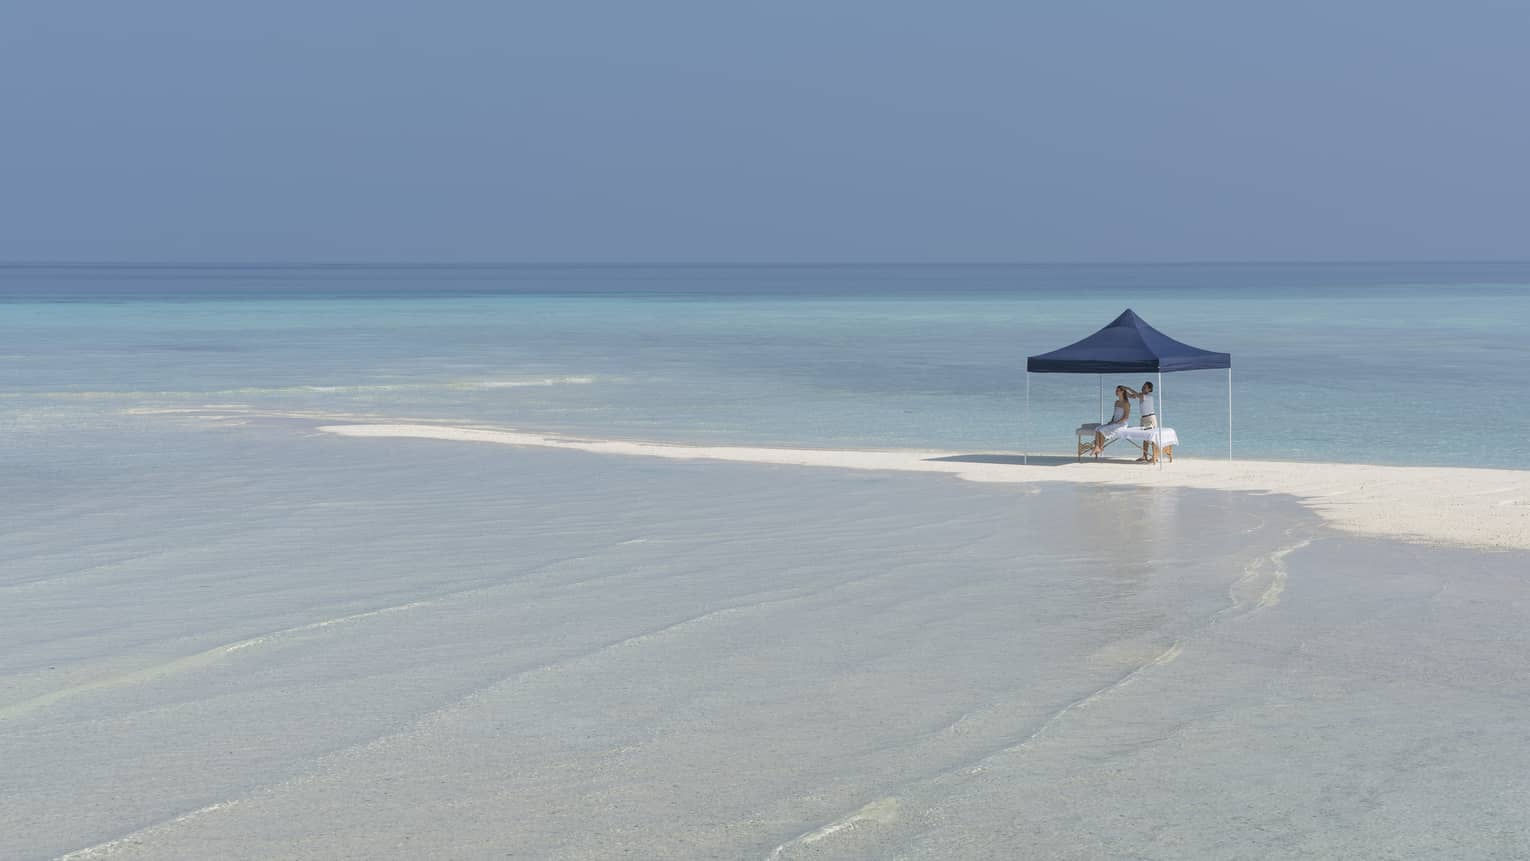 A four seasons guest receives a massage under a blue tent on the beach in Maldives